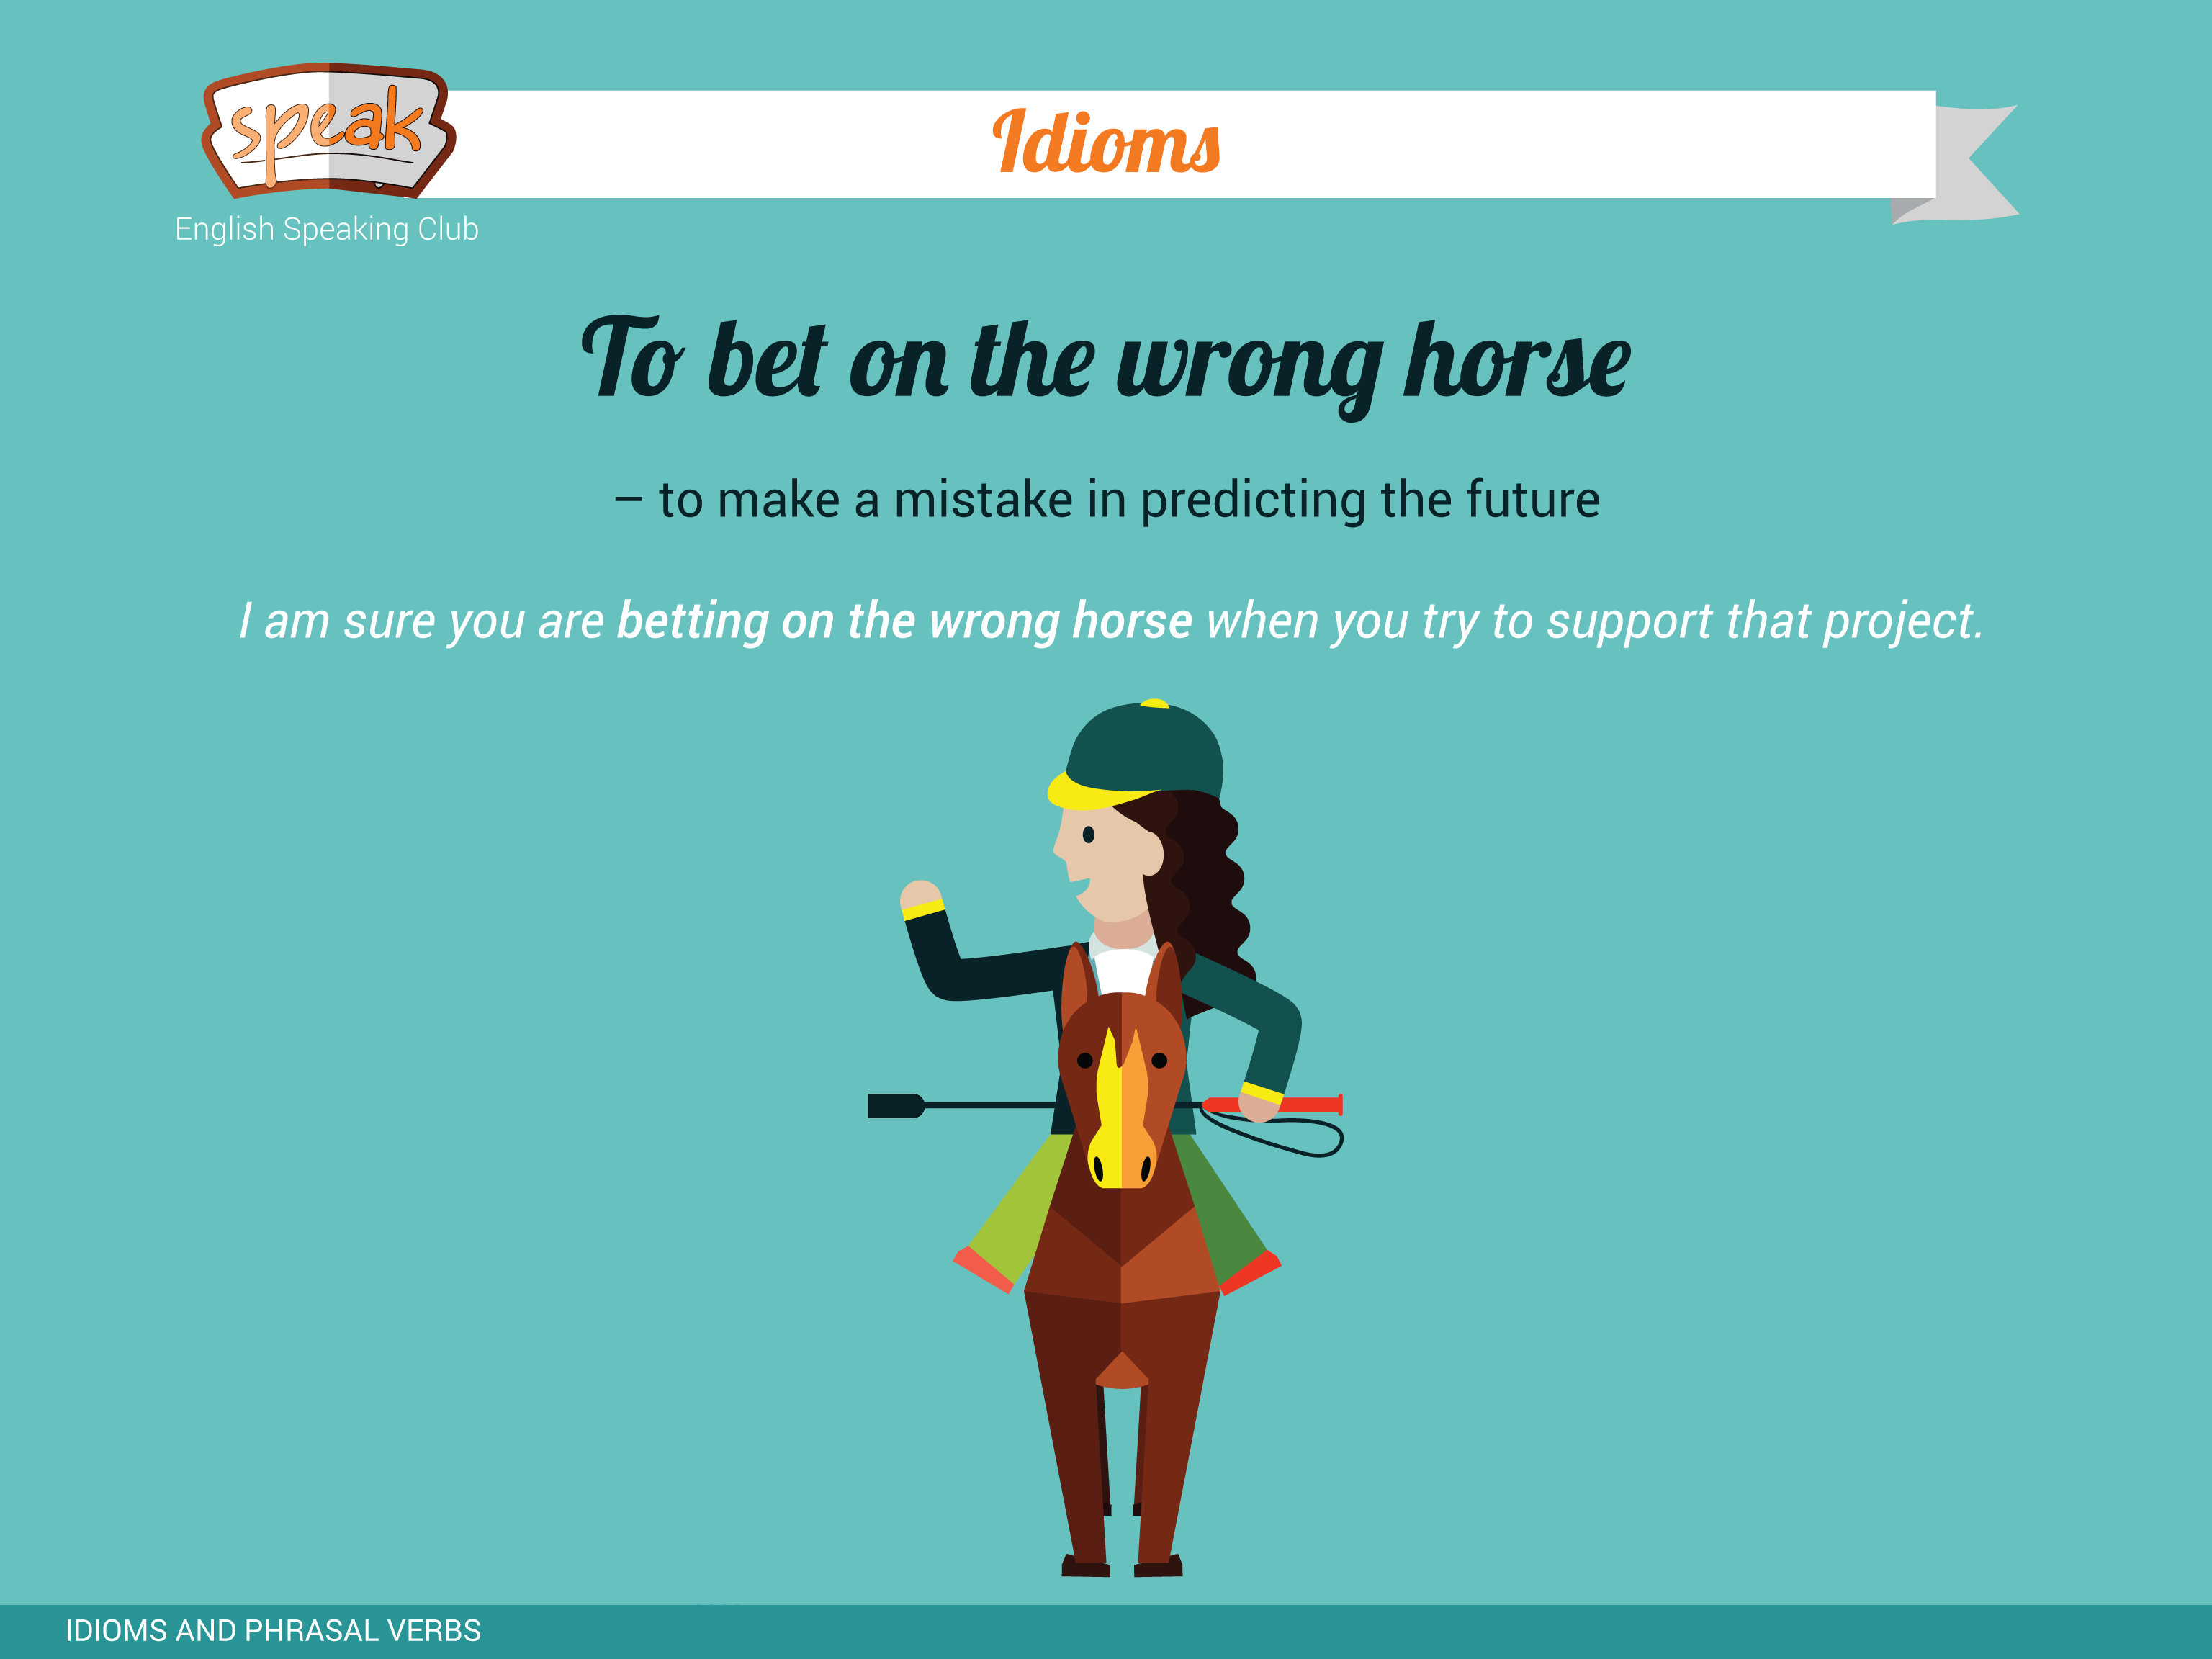 bet on the wrong horse idiom